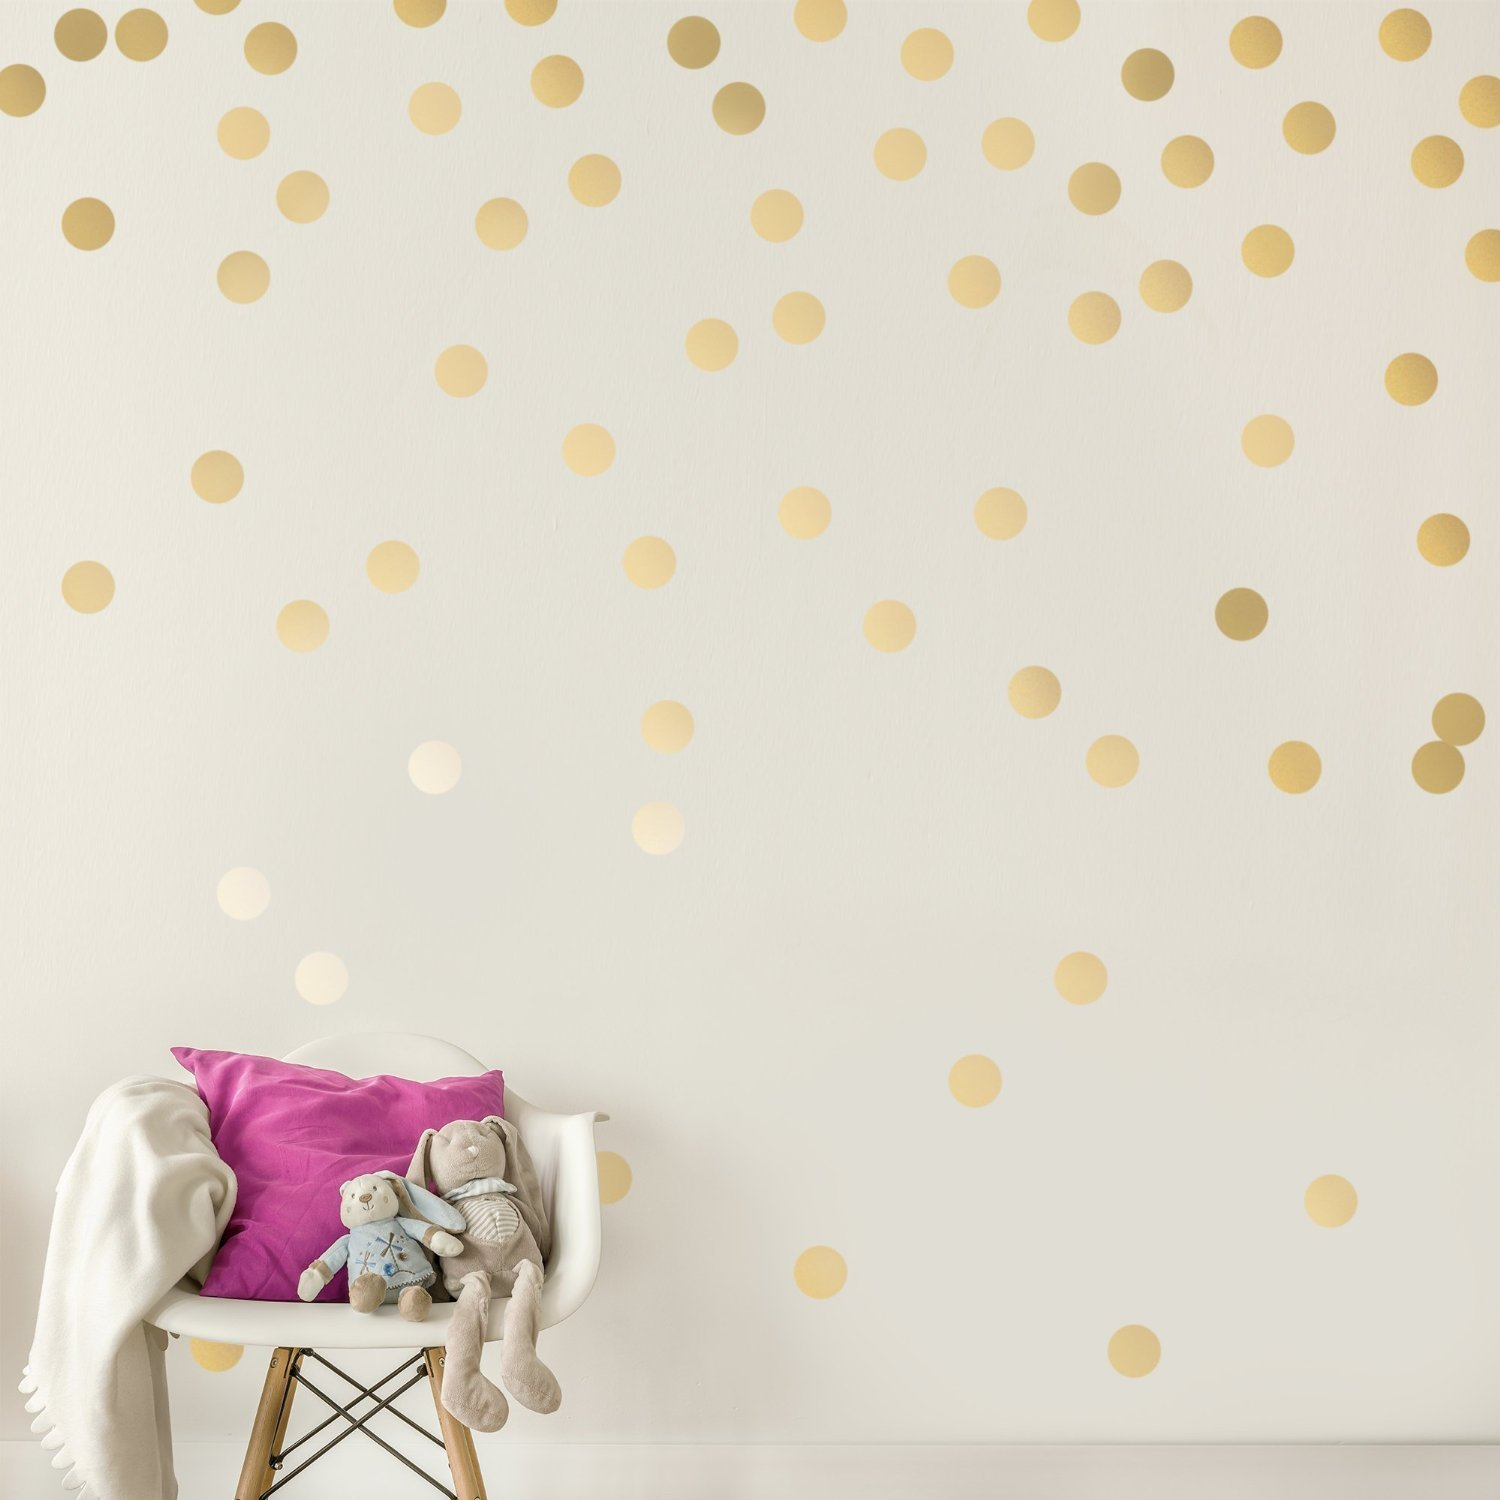 Gold Wall Decals (200 Decals) Wall Decor by